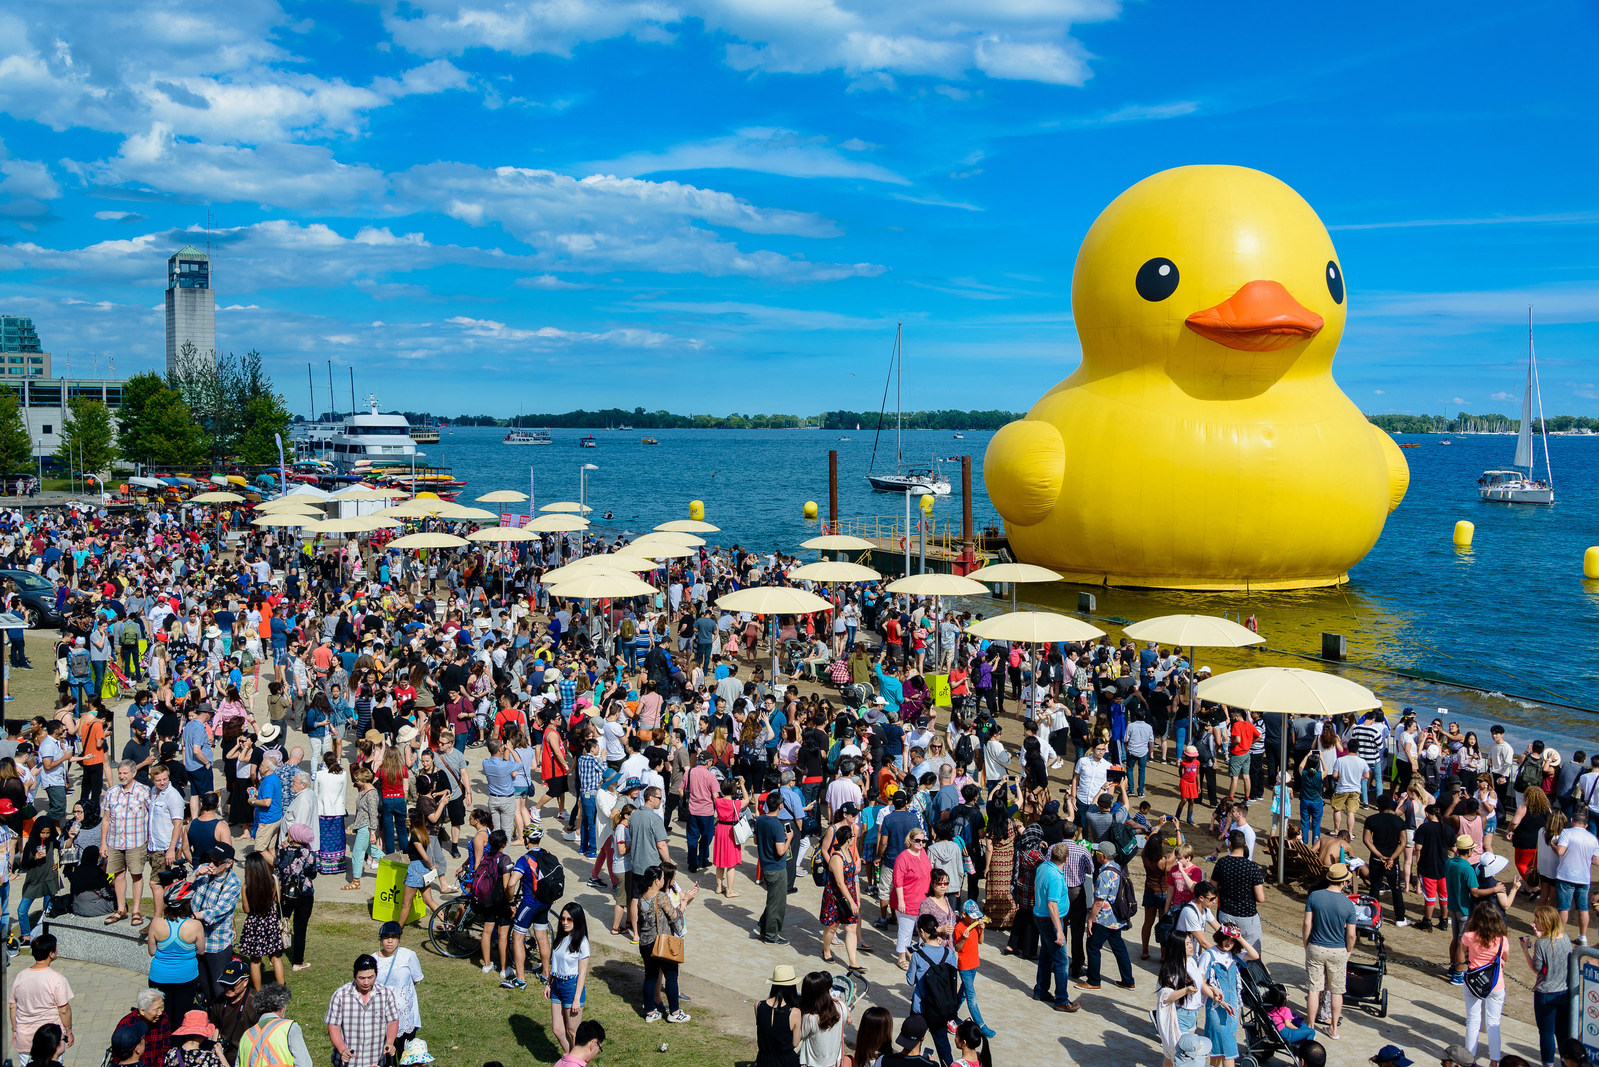 Paul Carriere, Louis B Hobson, Giant Rubber Duck, Ottawa Self Driving Cars